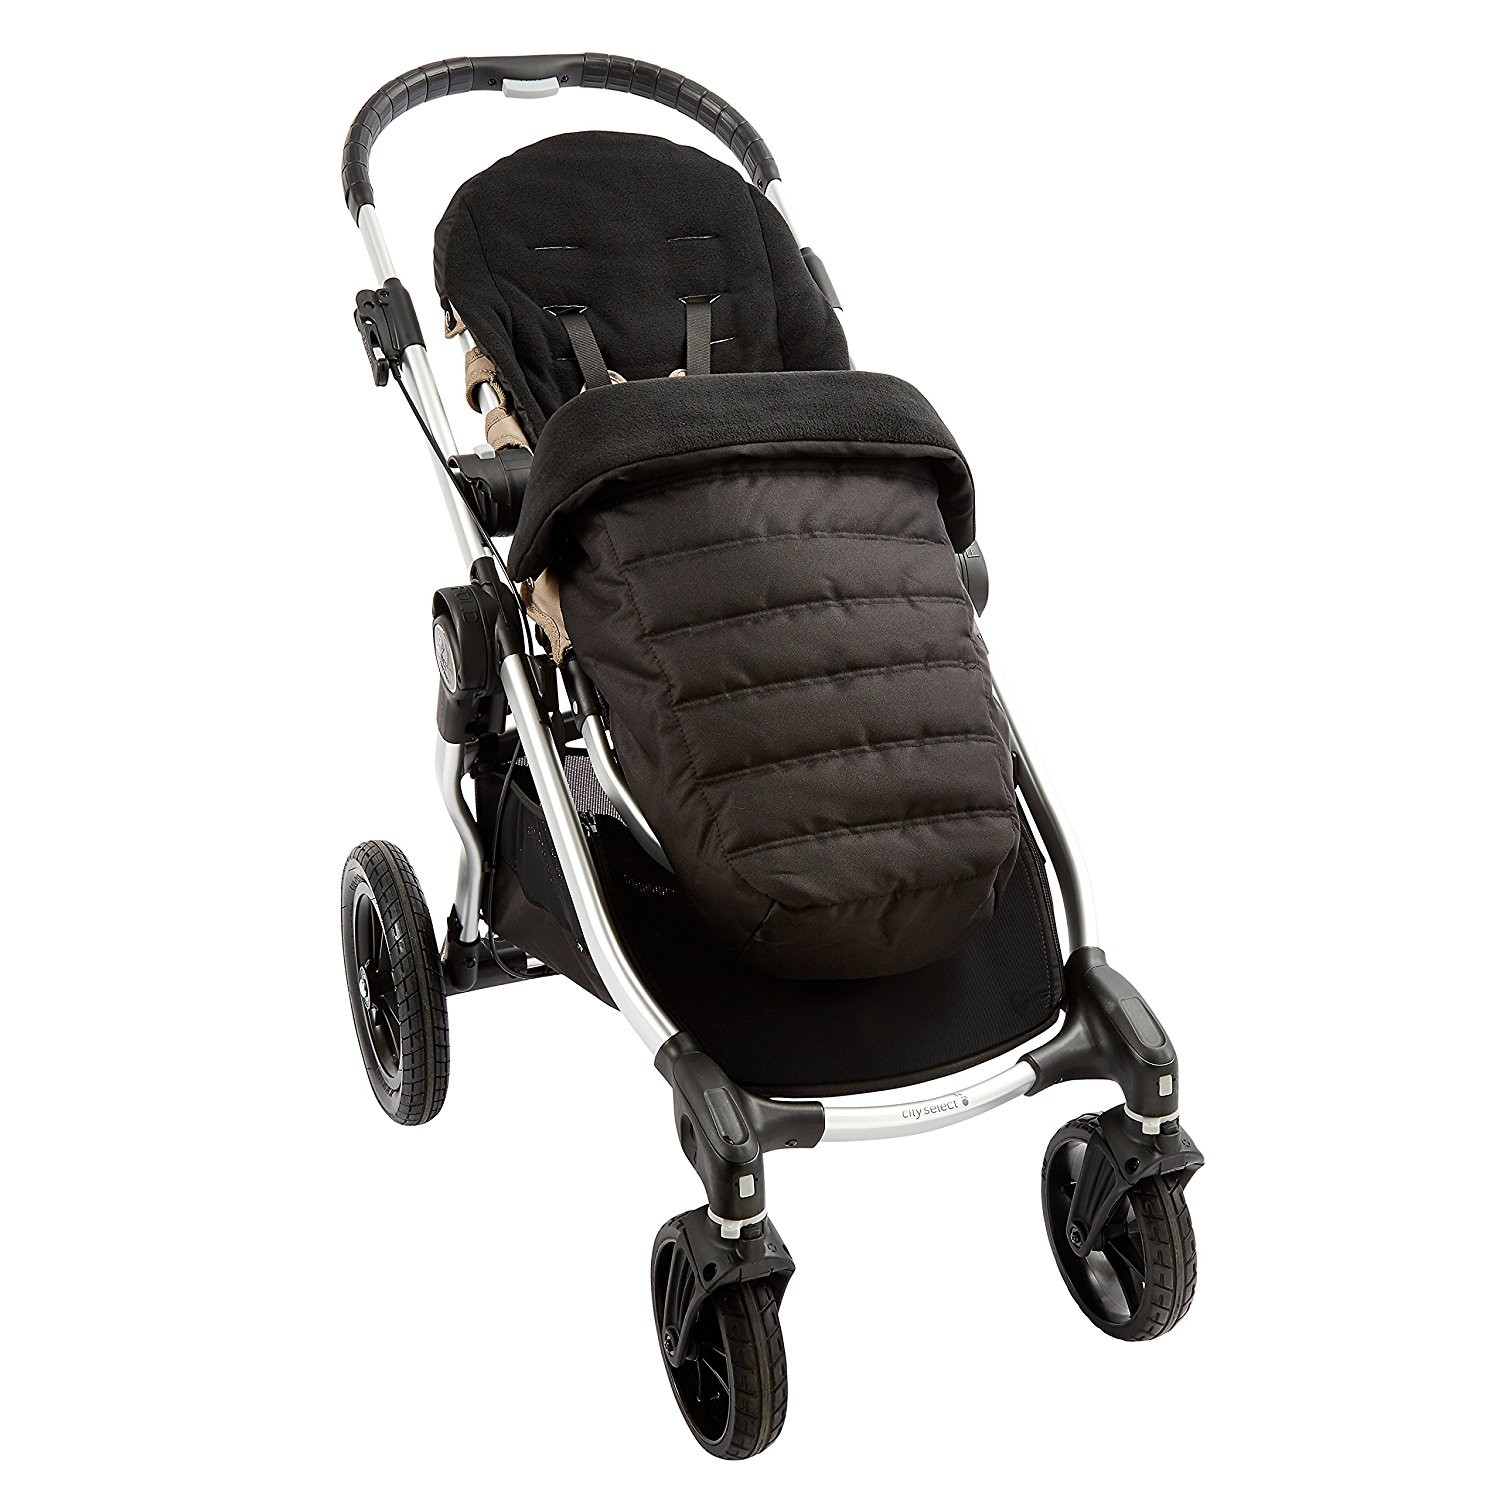 City Select Foot Muff, Onyx, Machine Washable By Baby Jogger